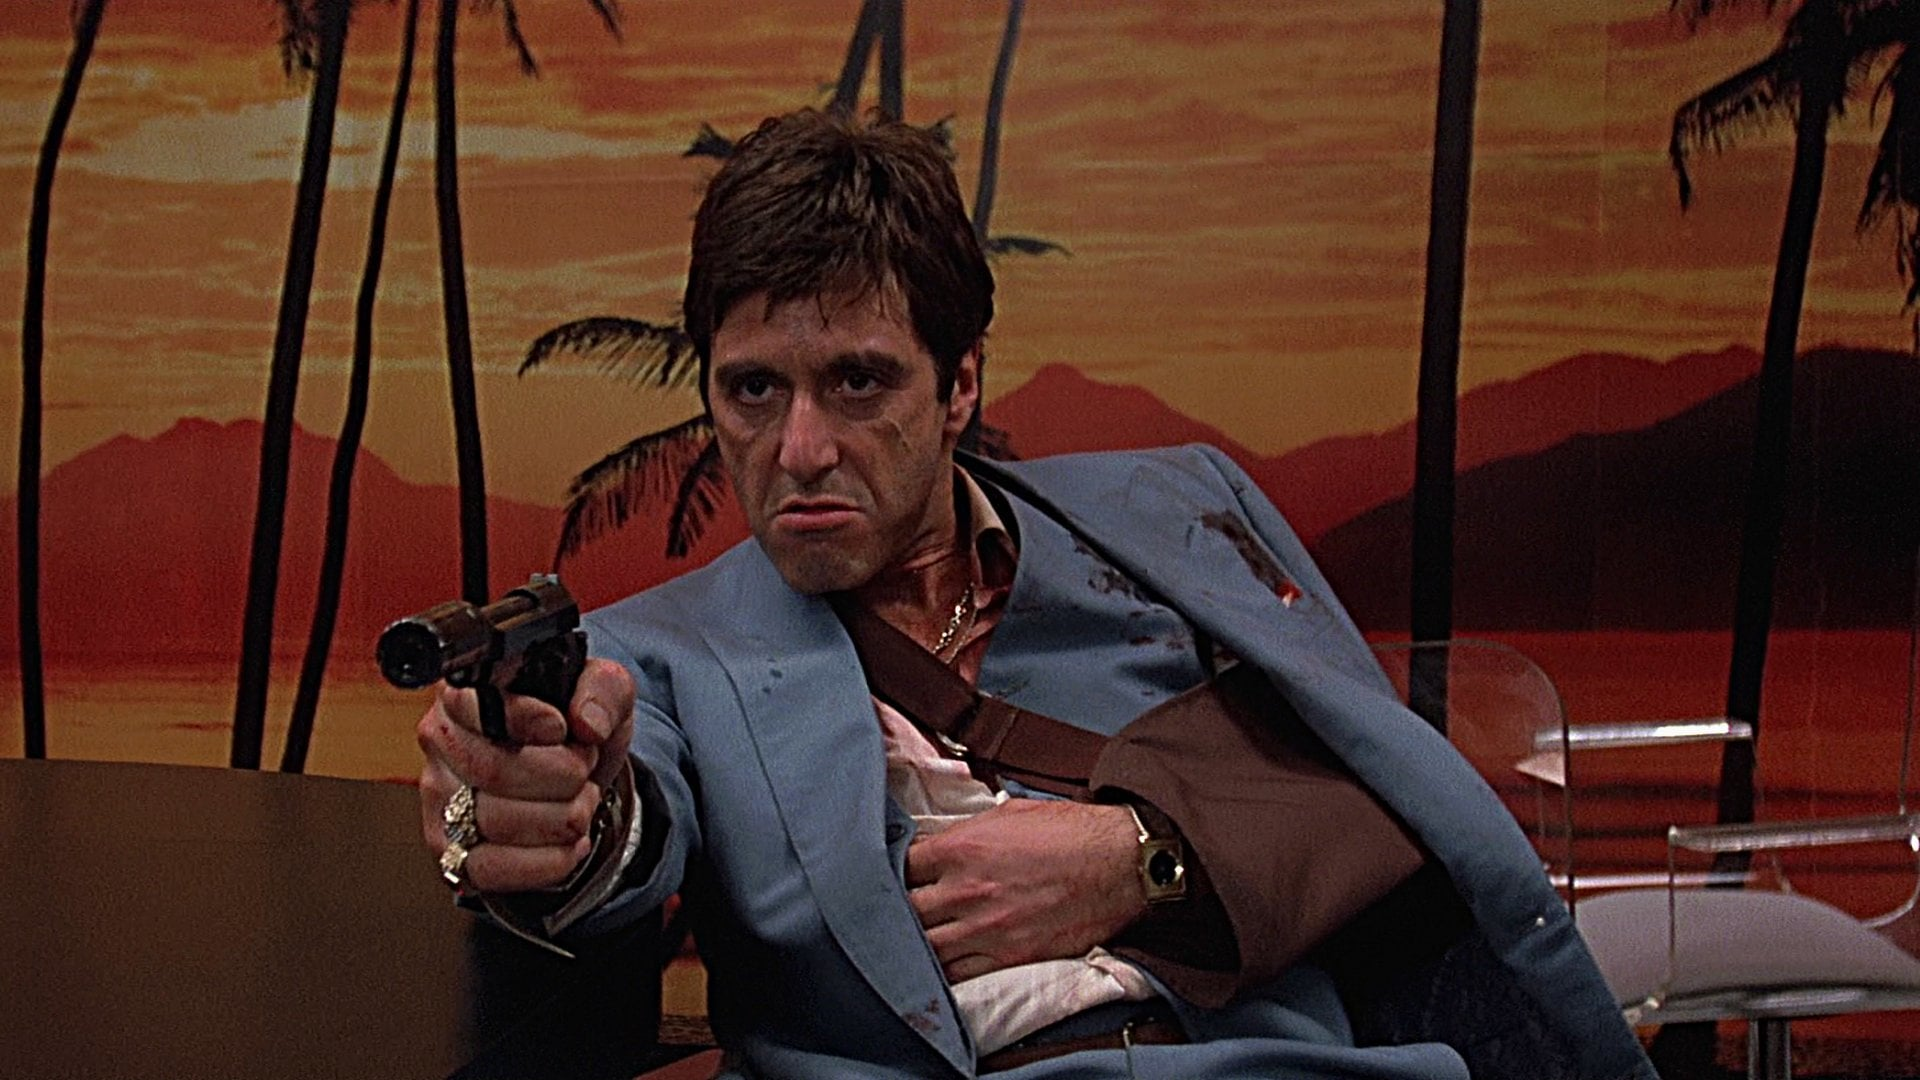 Scarface Wallpapers High Quality Download Free